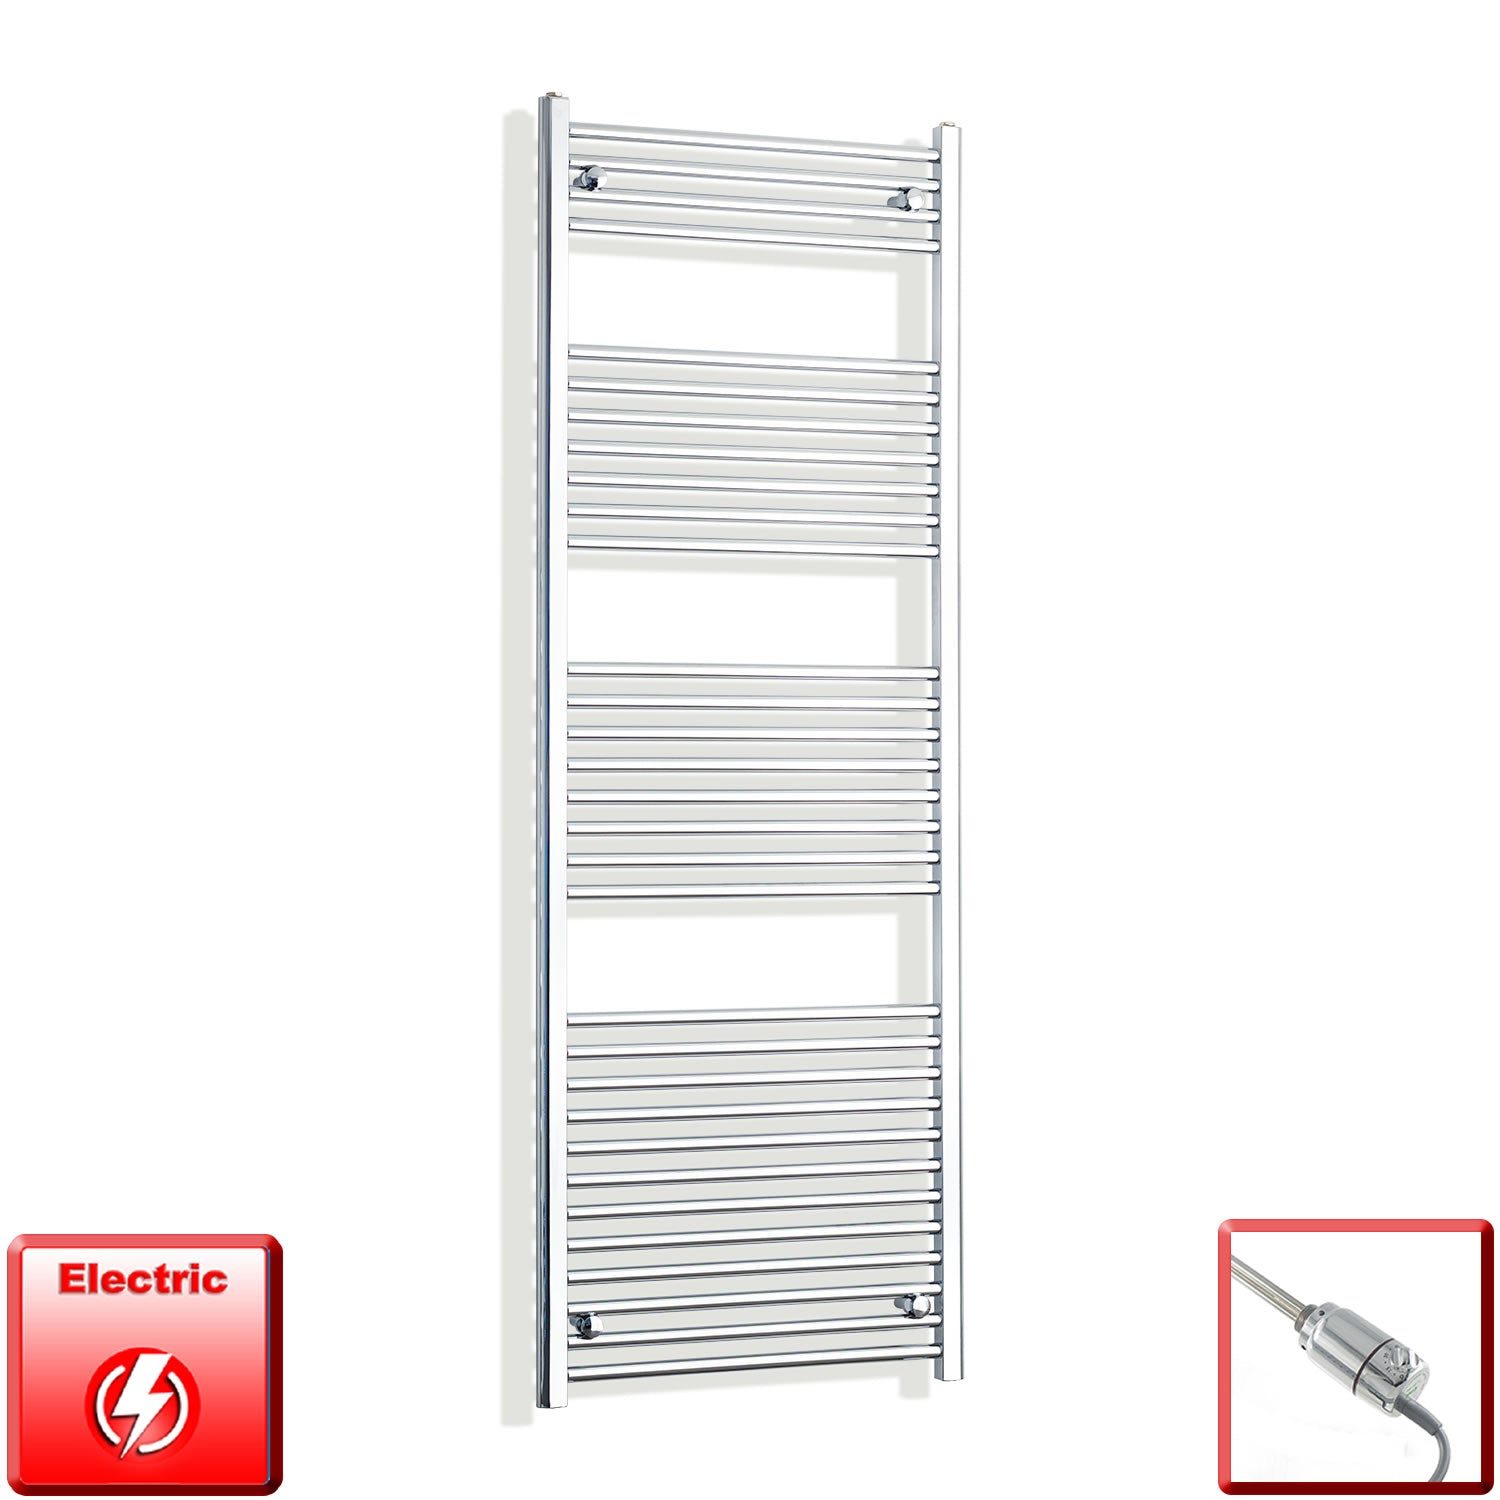 650mm Wide 1800mm High Pre-Filled Chrome Electric Towel Rail Radiator With Thermostatic GT Element